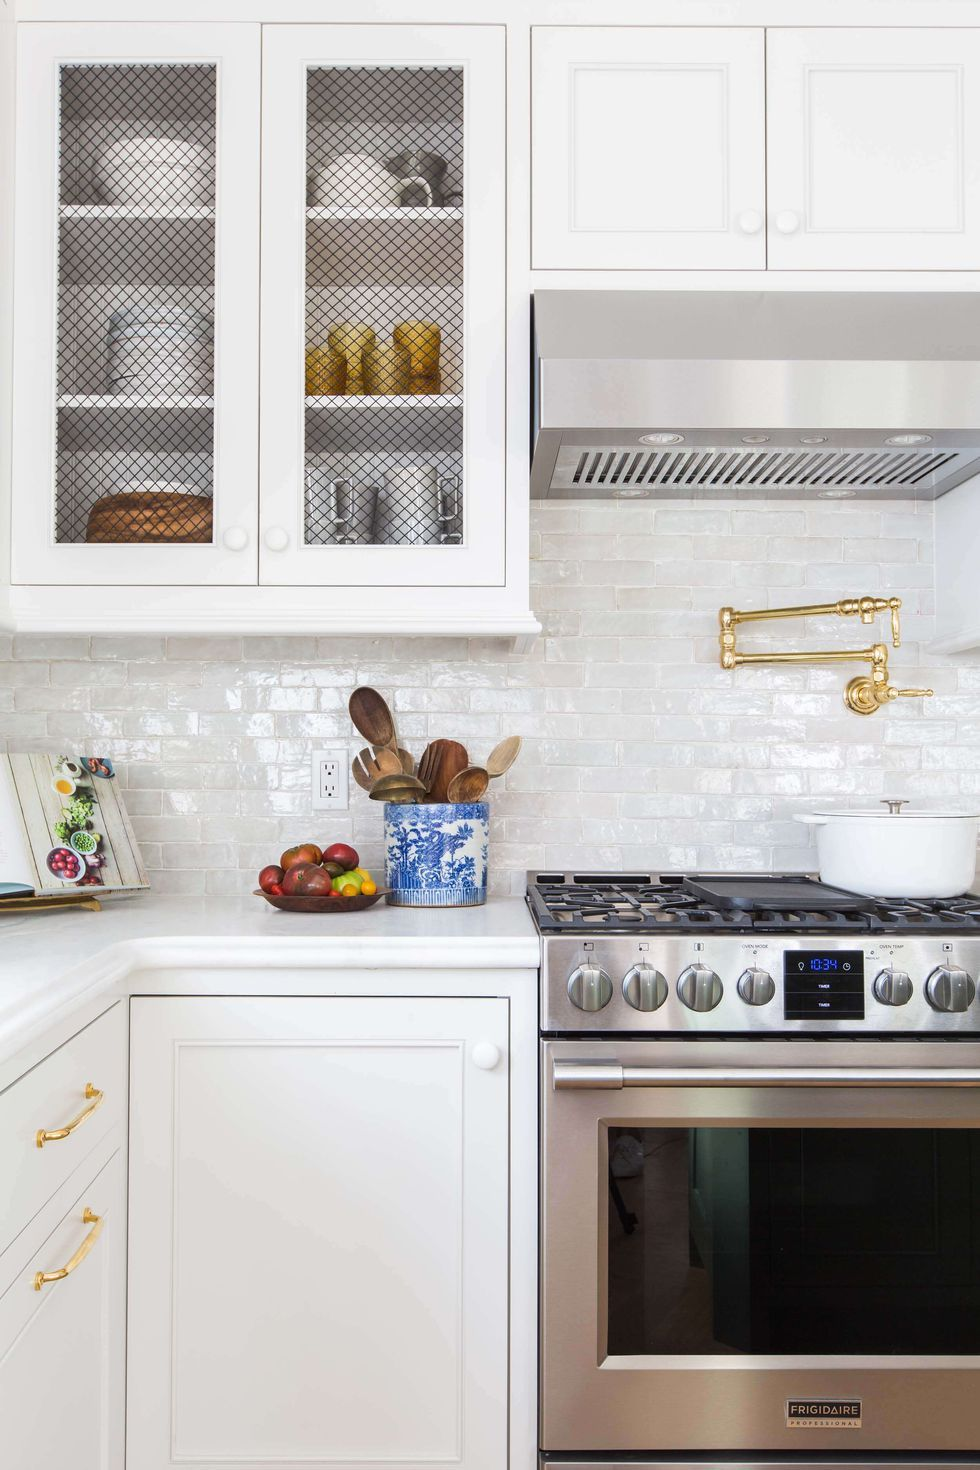 7 Popular Kitchen Backsplashes Ranked From Least To Most